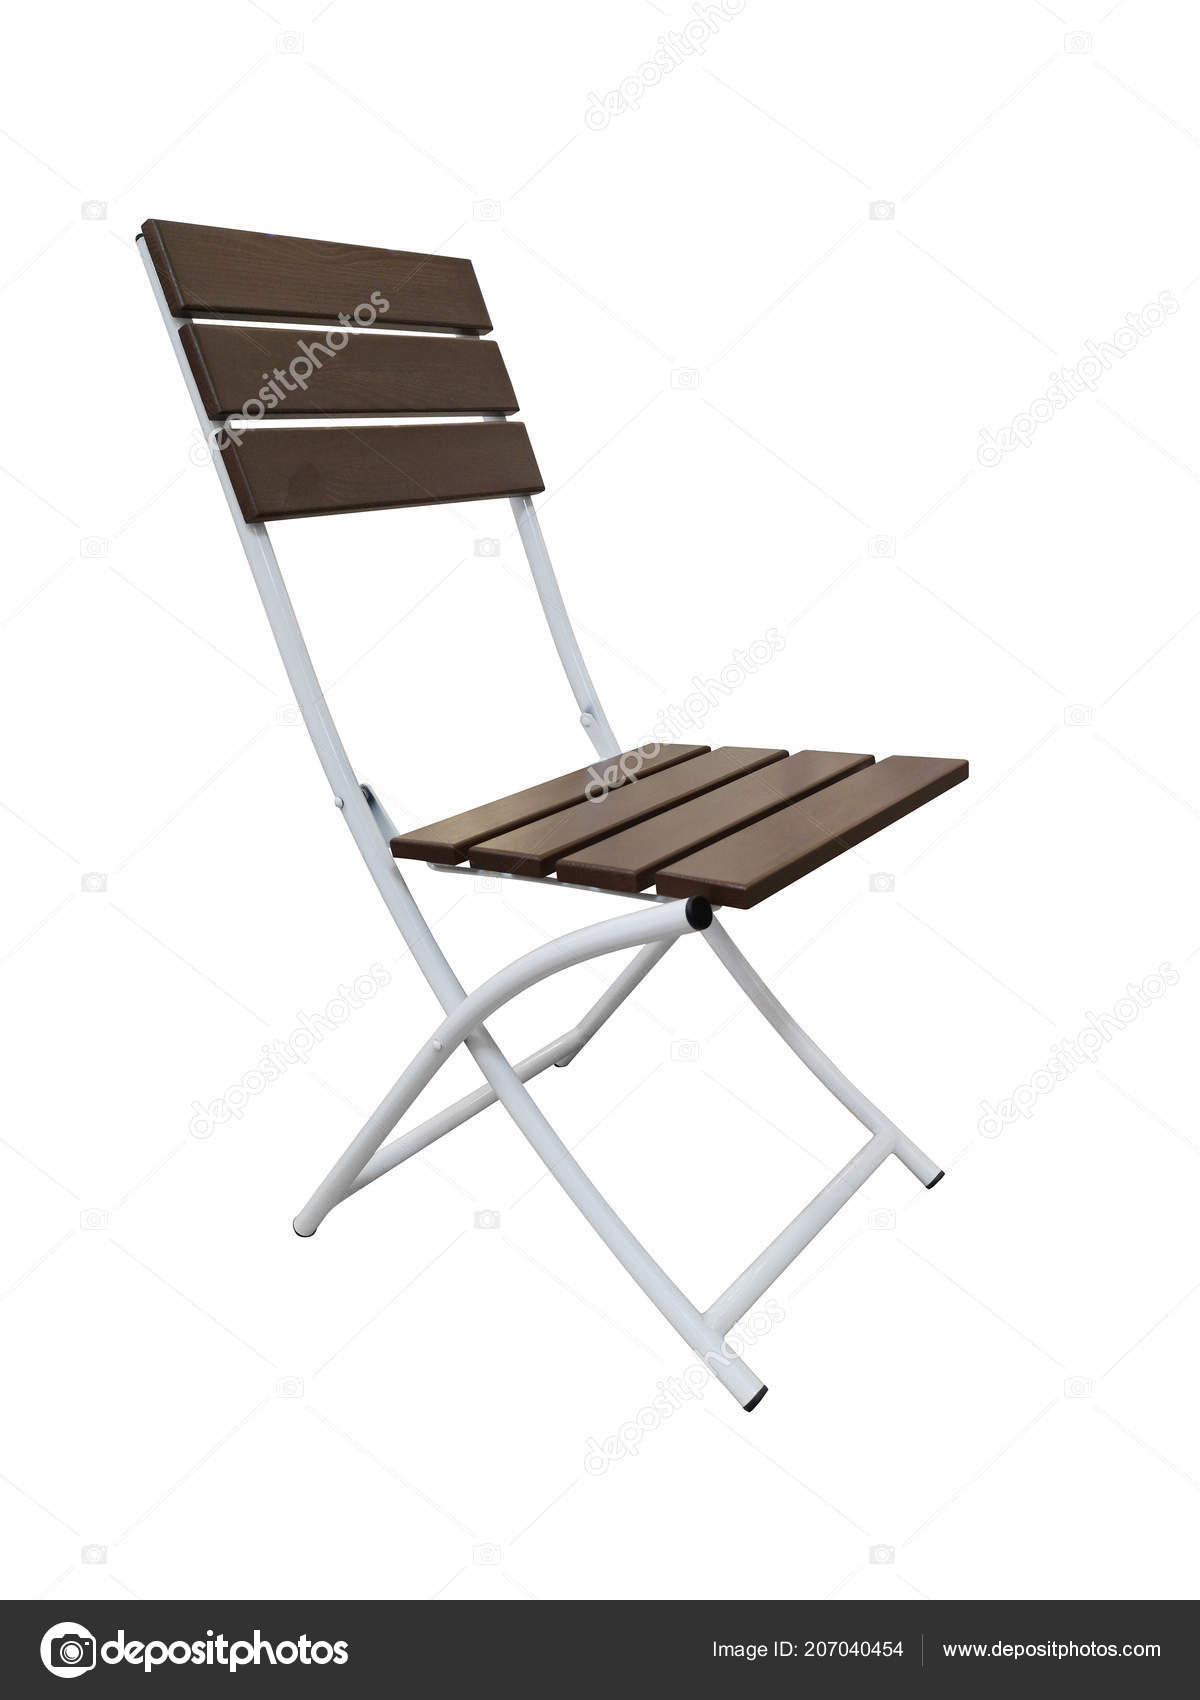 Folding Wooden Chairs Folding Wooden Chair White Background Isolated Brown Folding Chair